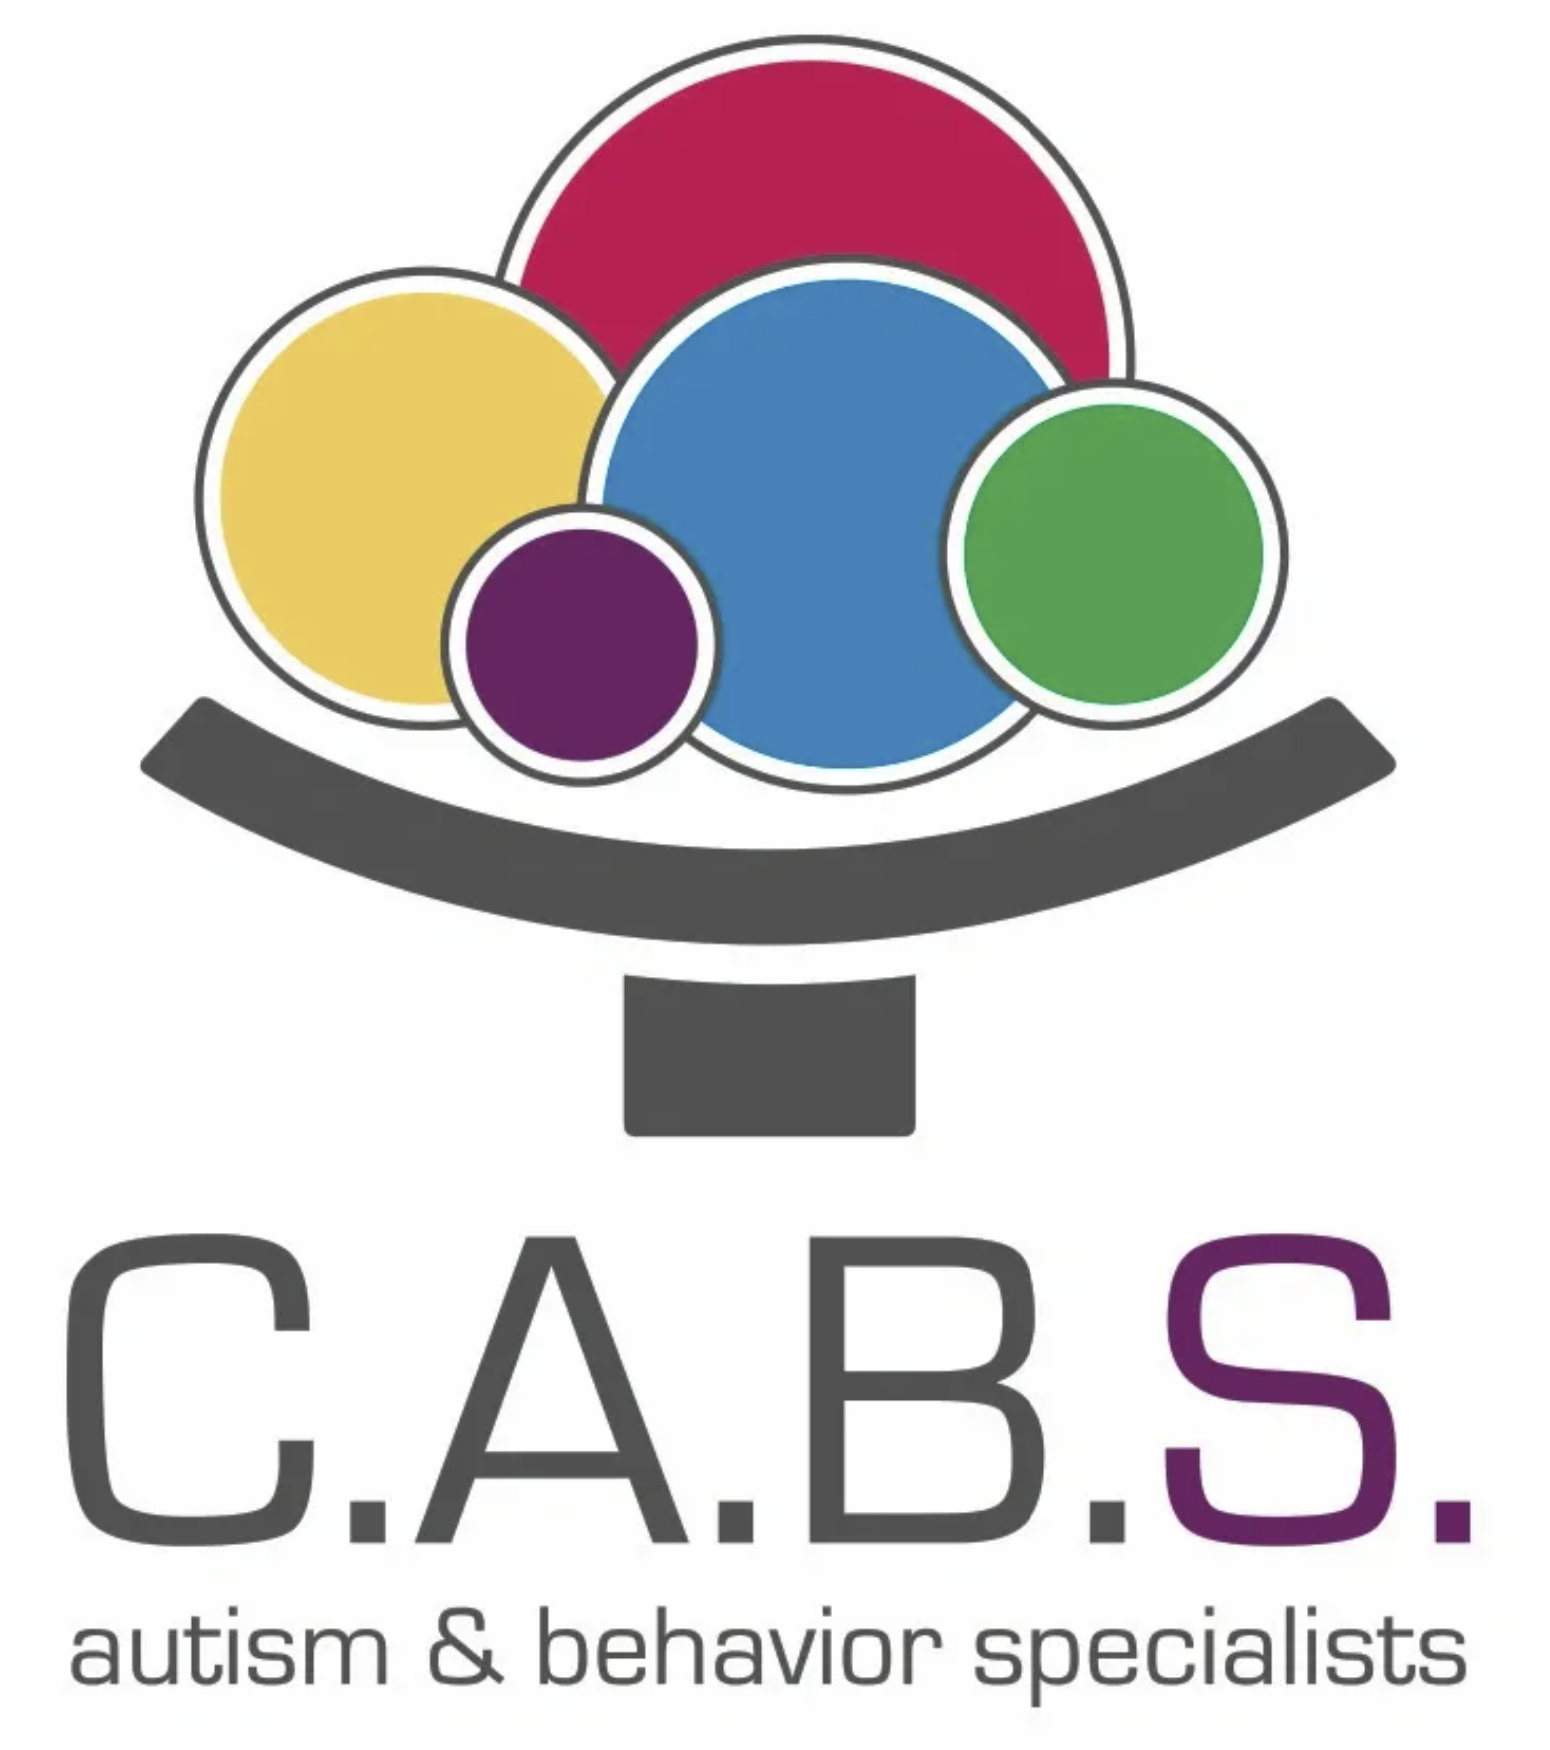 CABS Autism & Behavior Specialists Logo